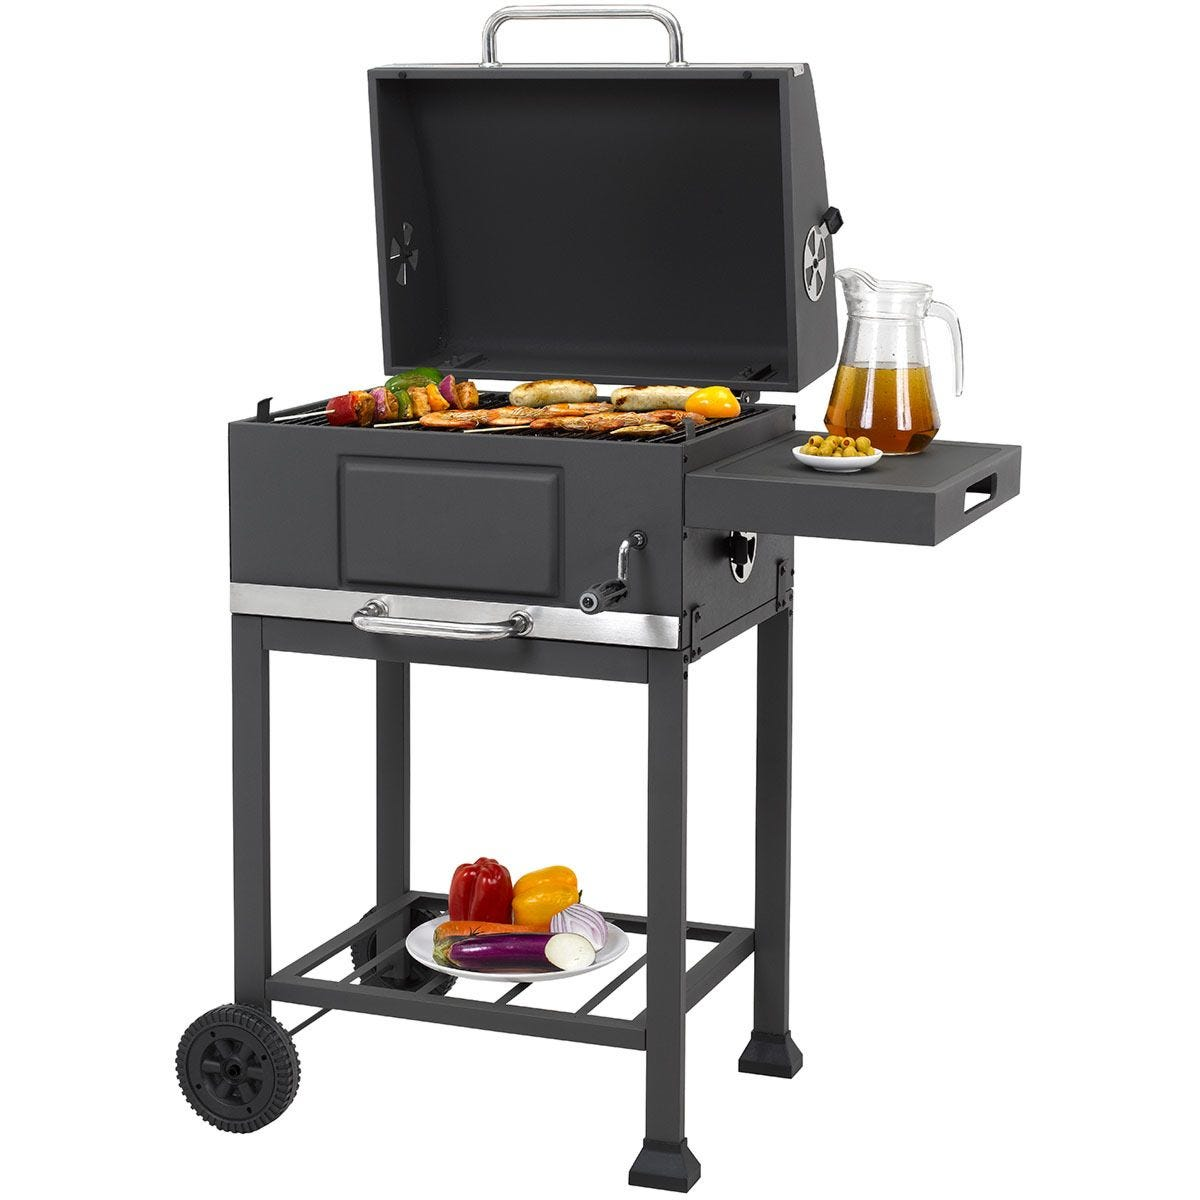 Tepro Toronto Basic Trolley Grill Barbecue